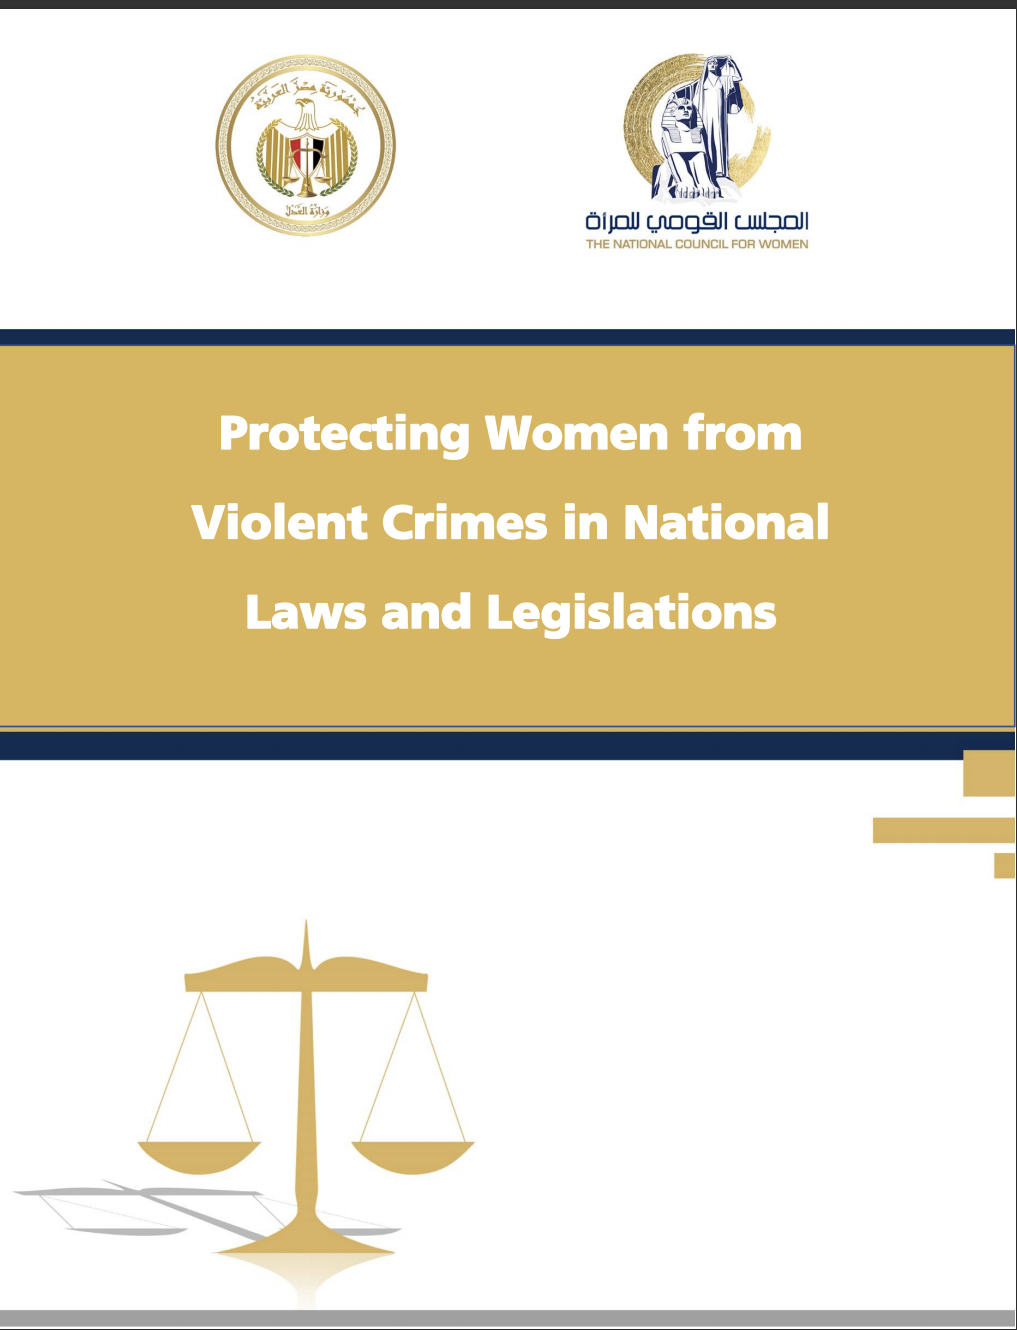 Protecting Women from Violent Crimes in National Laws and Legislations